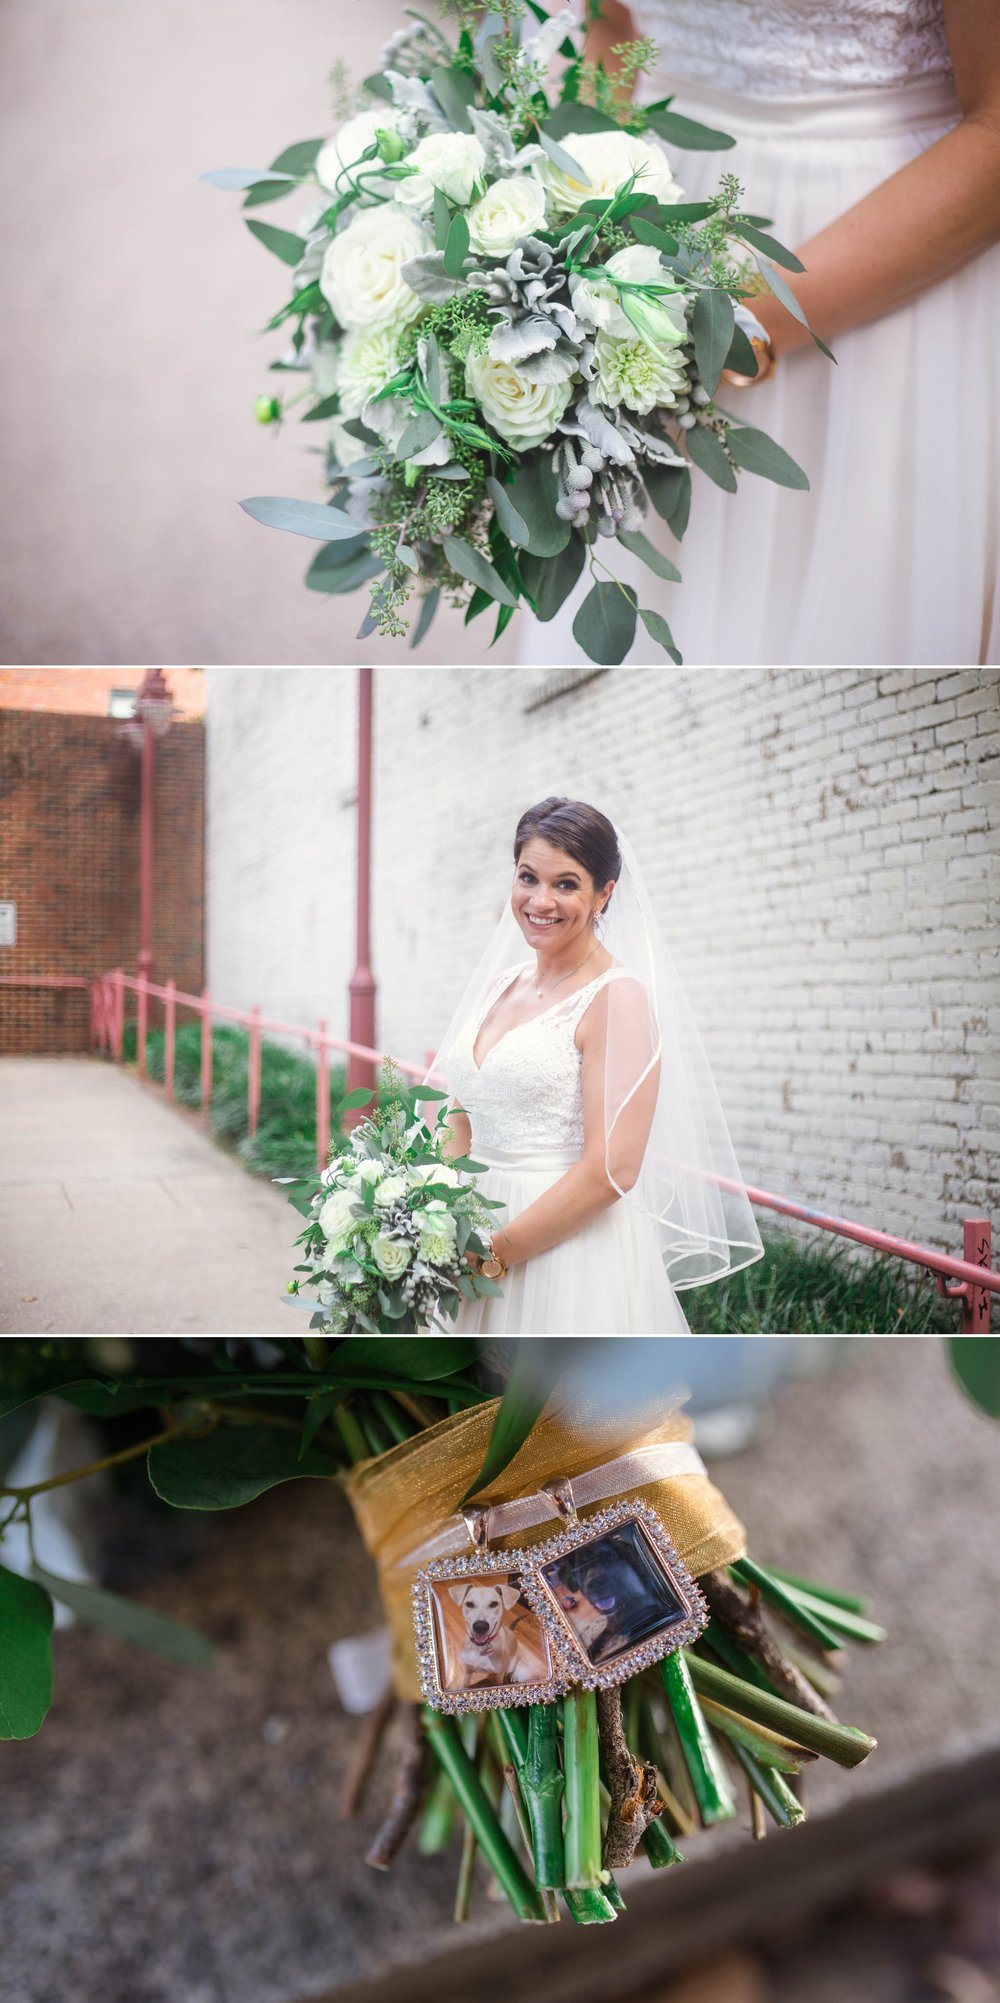 Portraits of Bride Downtown Raleigh - Clare + Wallace - The Jiddy Space - Raleigh North Carolina Wedding Photographer